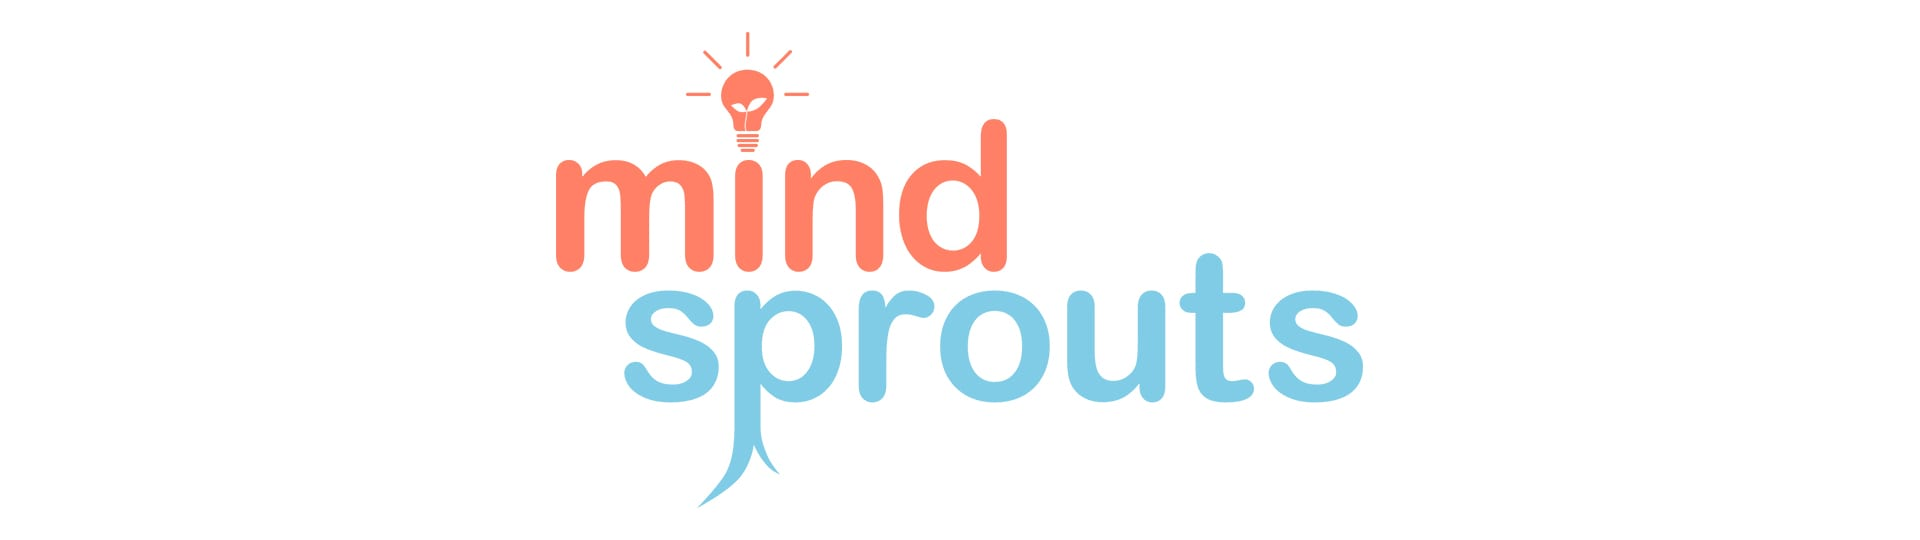 MindSprouts